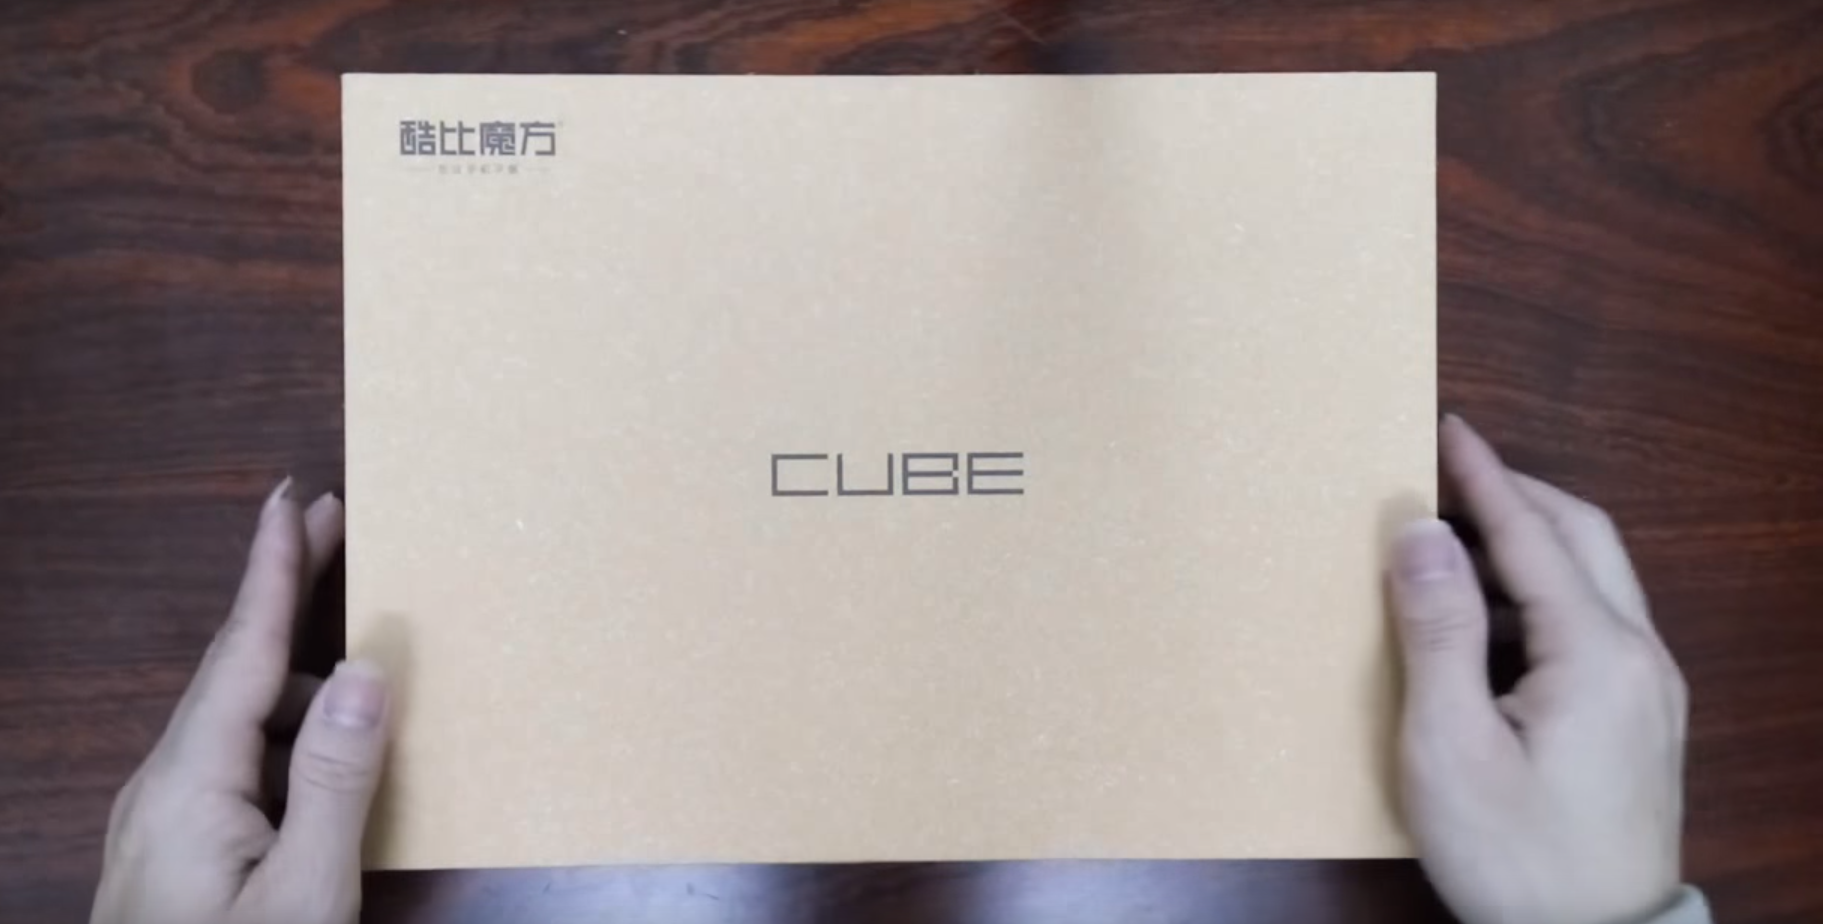 Cube iWork 10 packaging - brown box with the Cube logo on a dark brown table, held in hands.